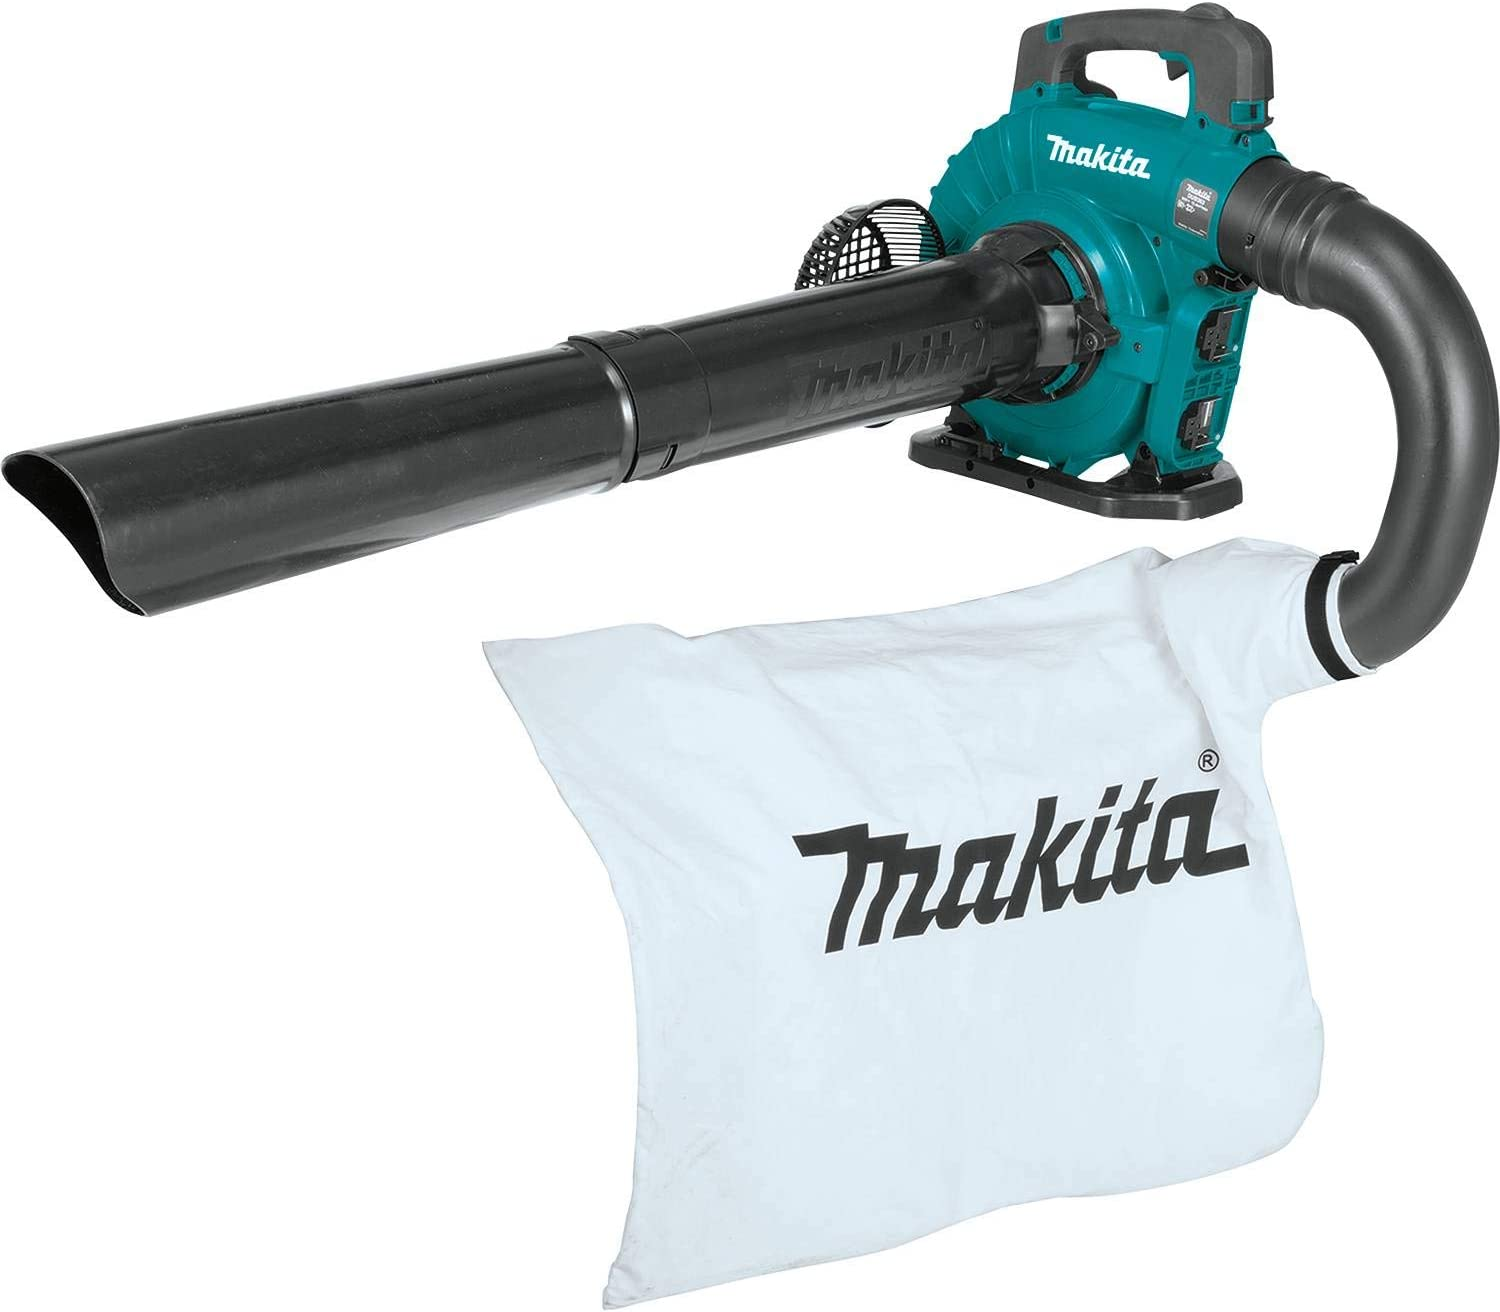 Makita XBU04ZV Lithium-Ion Brushless Cordless, Tool Only 18V X2 (36V) LXT Blower